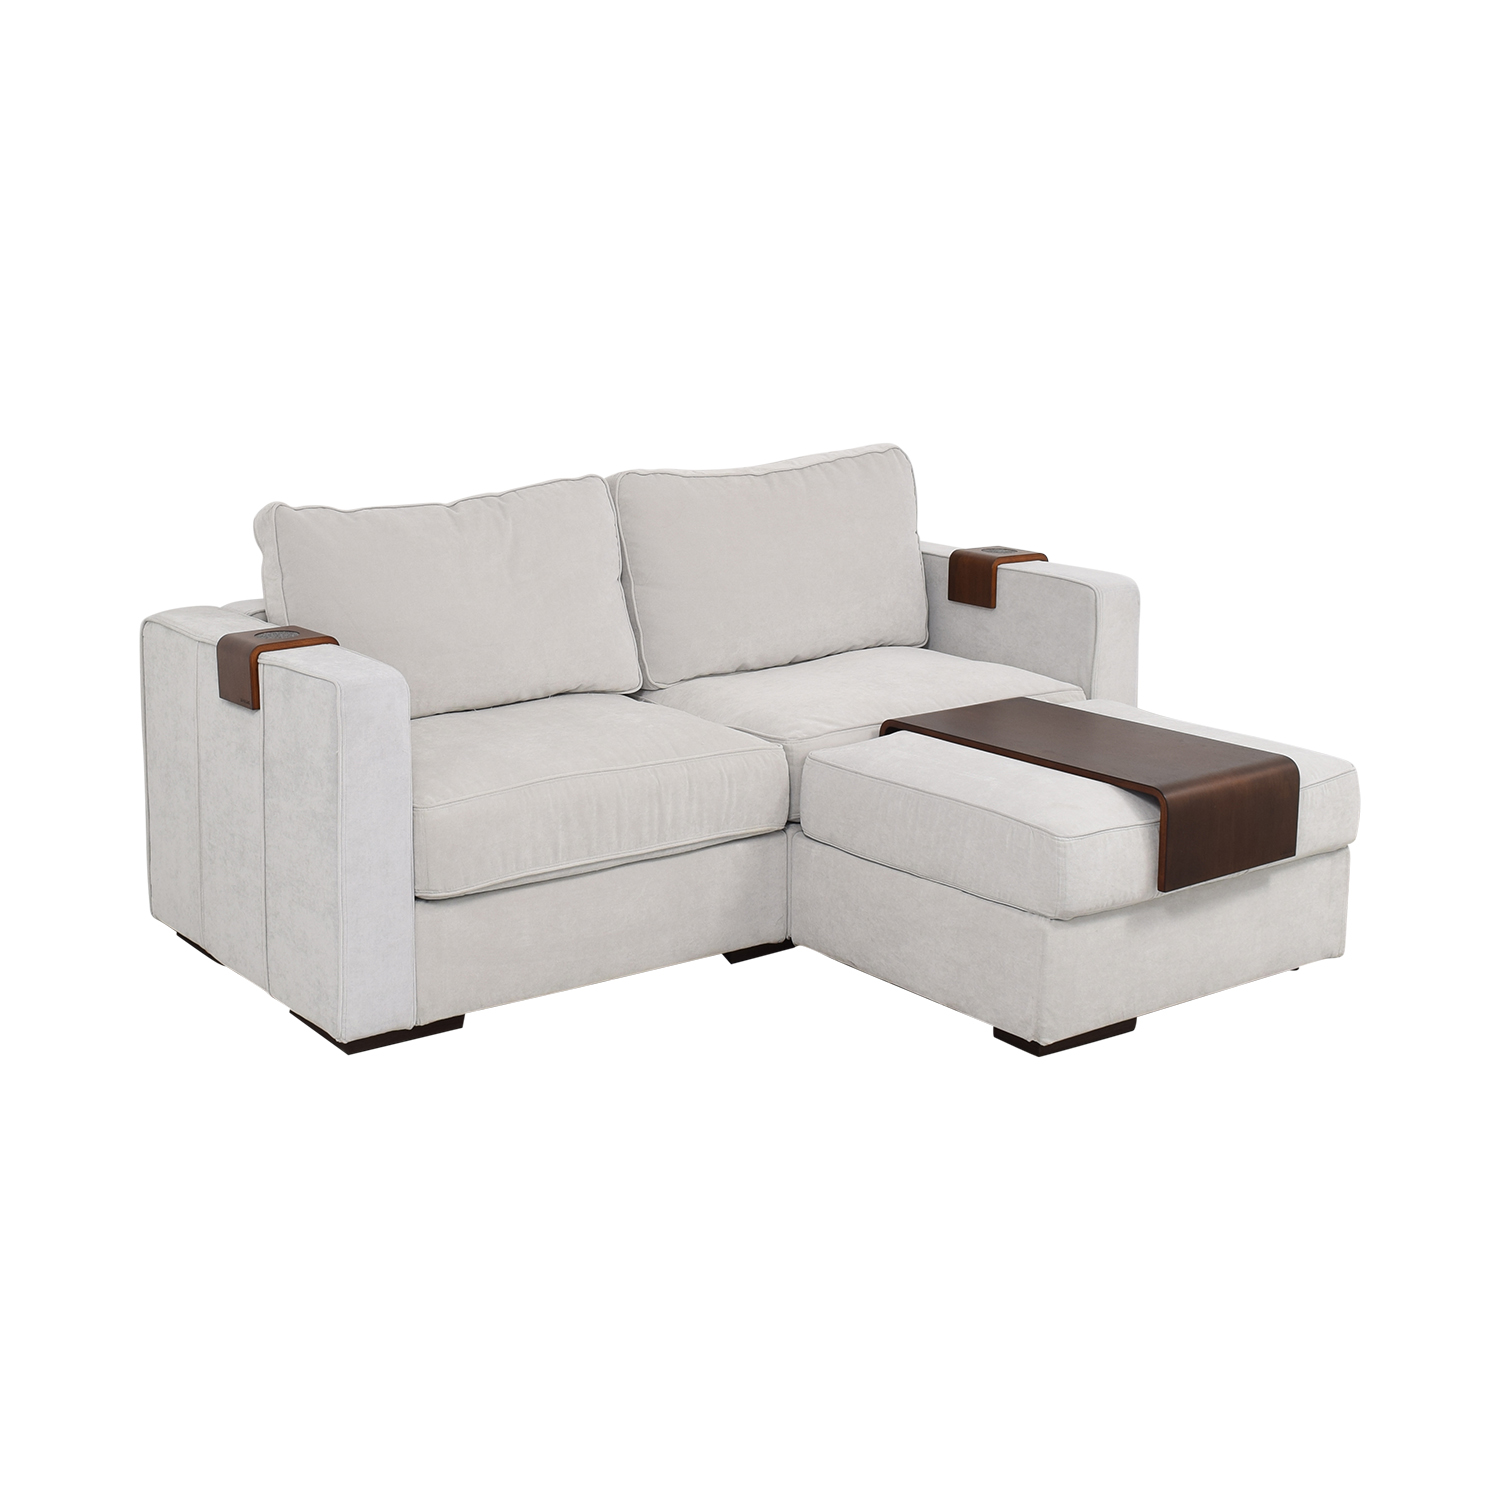 Terrific 67 Off Lovesac Lovesac Loveseat With Ottoman Sofas Spiritservingveterans Wood Chair Design Ideas Spiritservingveteransorg